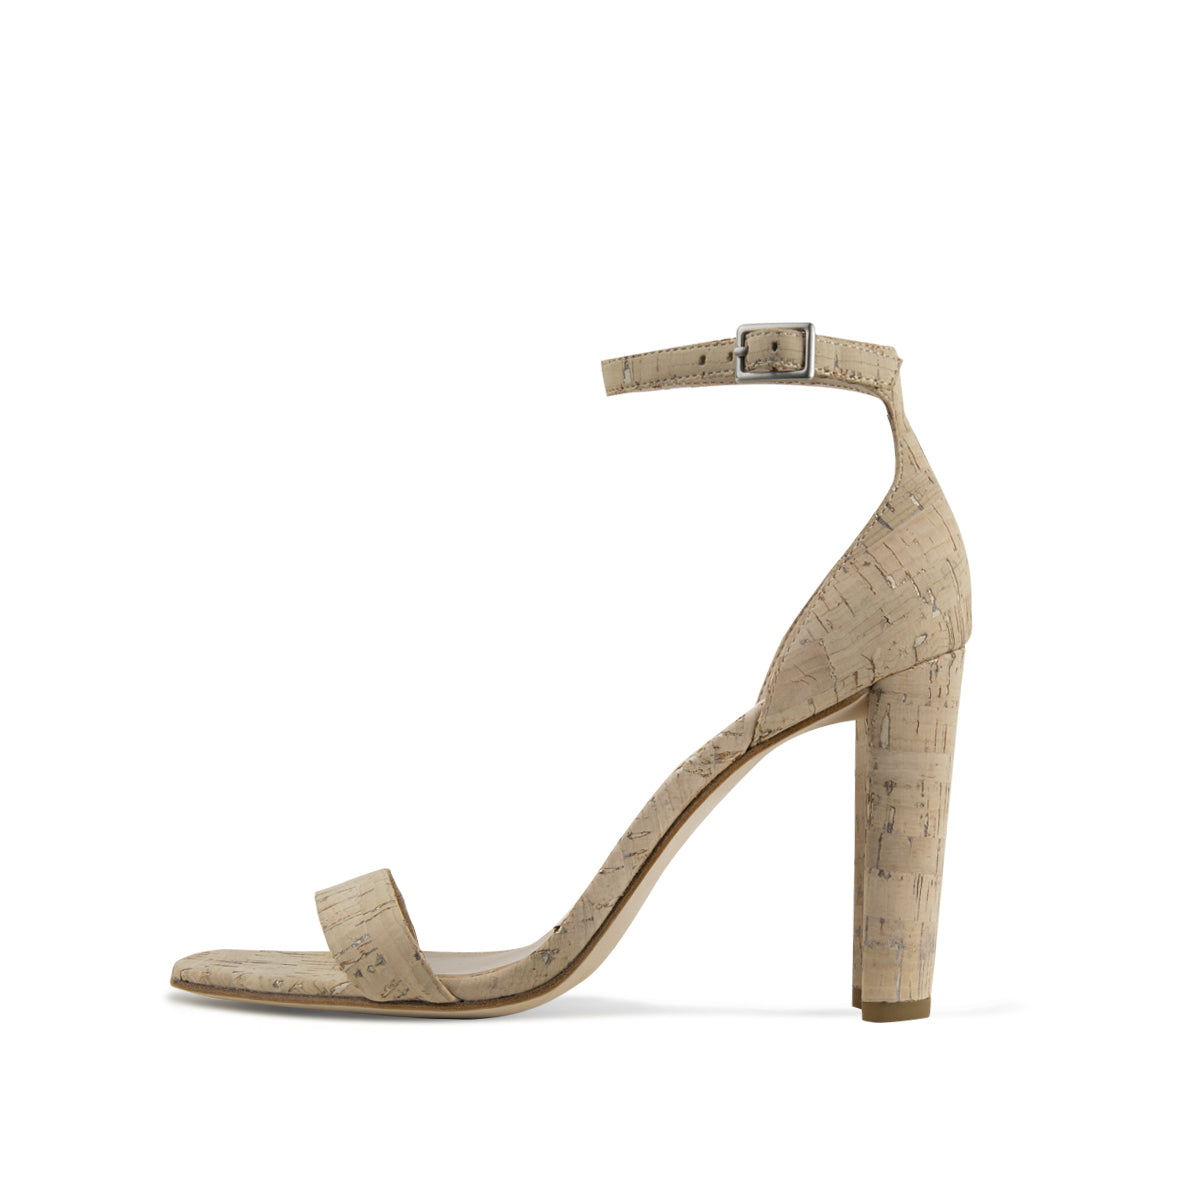 Gabi 2 (White /Washed  Cork) 30% Off